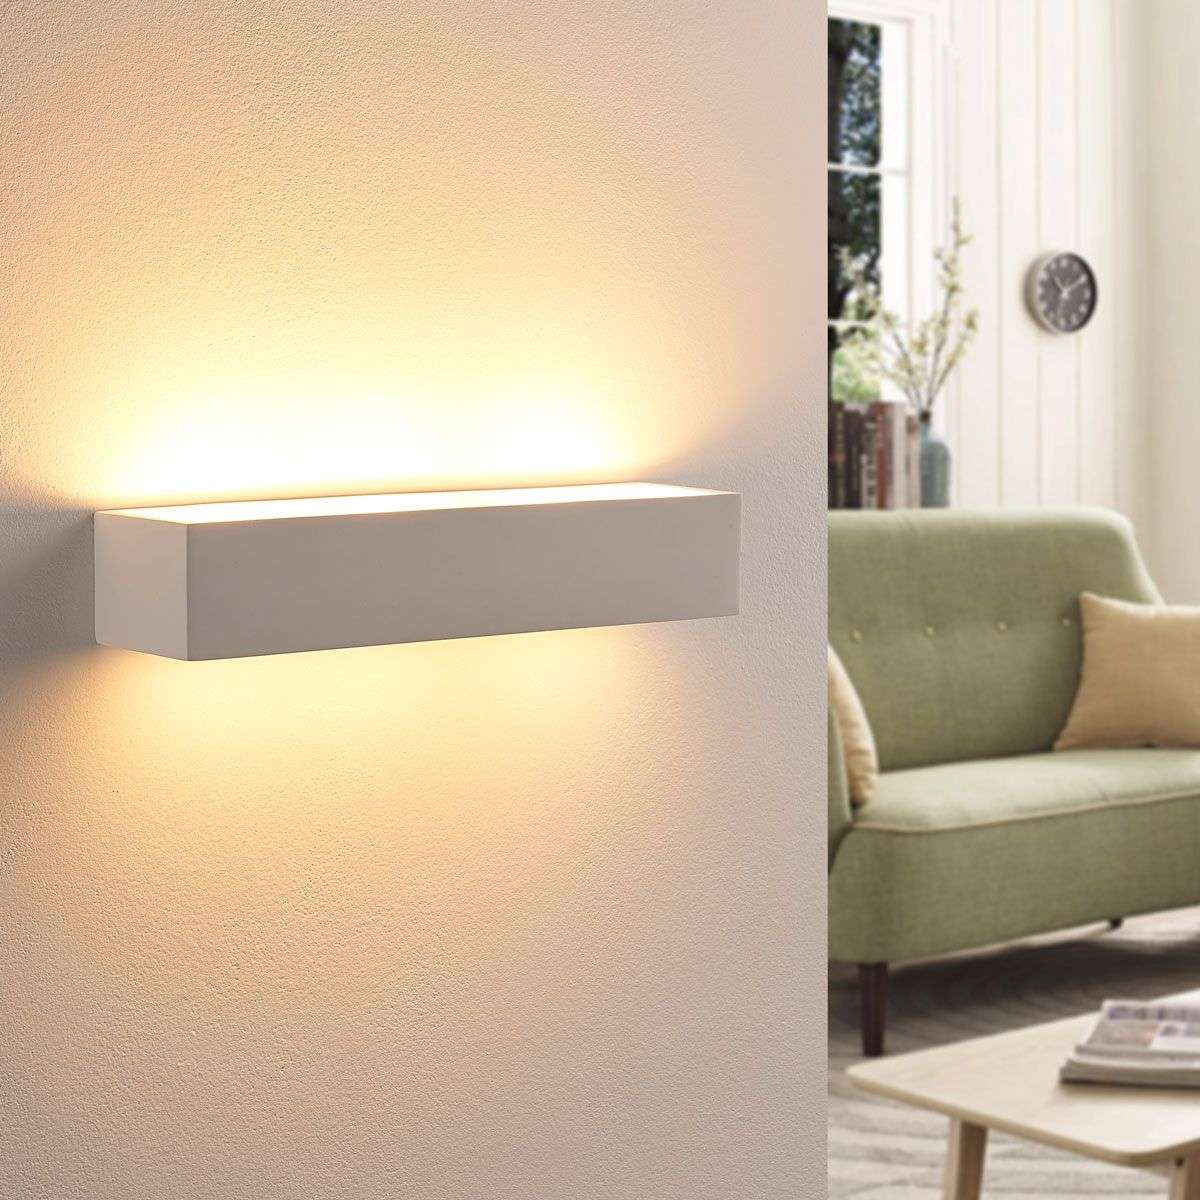 Arya led wall light made of white plaster for Ambienti interni moderni